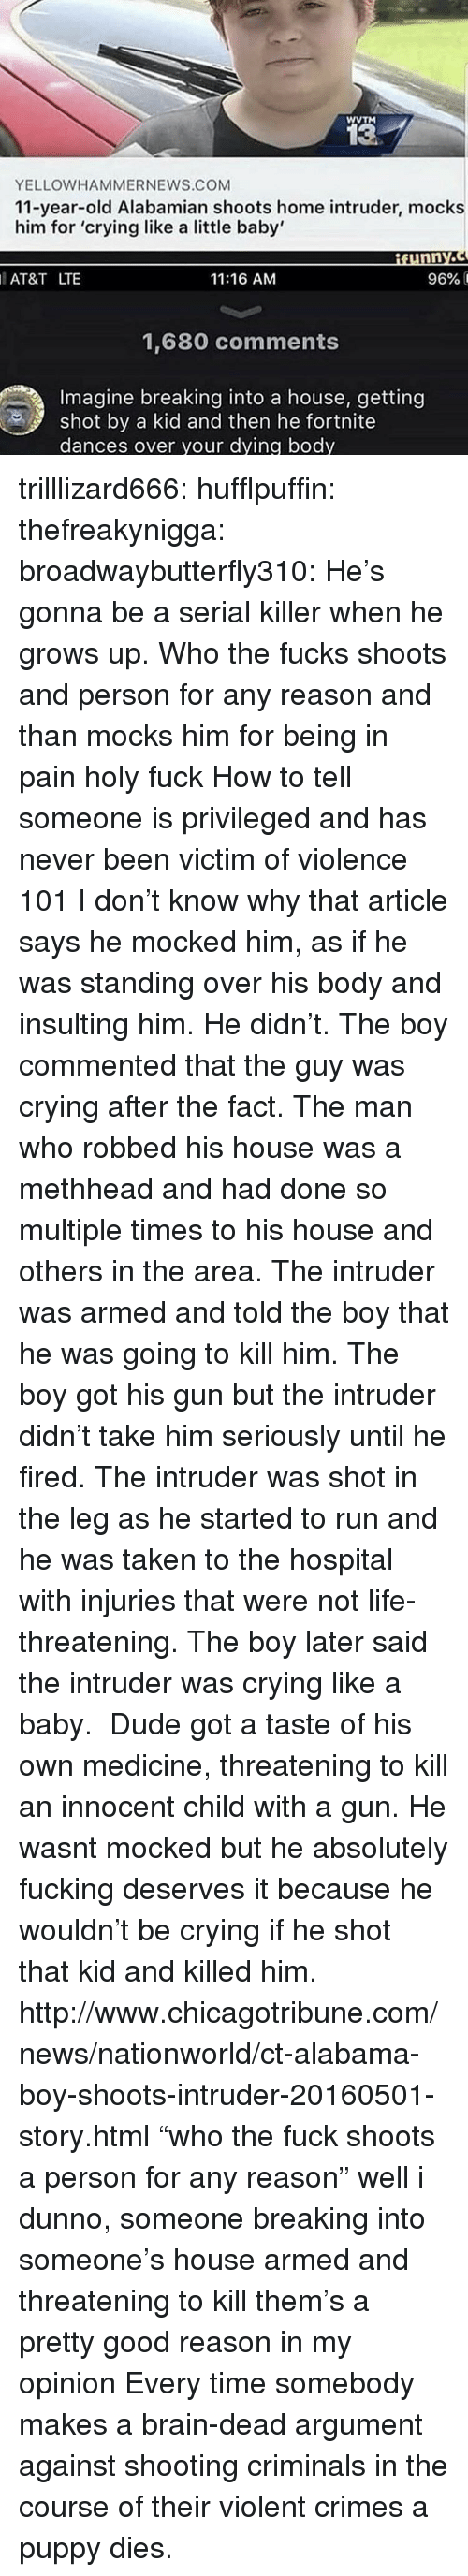 """Getting Shot: WVTM  13  YELLOWHAMMERNEWS.COM  11-year-old Alabamian shoots home intruder, mocks  him for 'crying like a little baby'  AT&T LTE  11:16 AM  96% і  1,680 comments  Imagine breaking into a house, getting  shot by a kid and then he fortnite  dances over your dying body trilllizard666:  hufflpuffin:  thefreakynigga:  broadwaybutterfly310: He's gonna be a serial killer when he grows up. Who the fucks shoots and person for any reason and than mocks him for being in pain holy fuck How to tell someone is privileged and has never been victim of violence 101  I don't know why that article says he mocked him, as if he was standing over his body and insulting him. He didn't. The boy commented that the guy was crying after the fact. The man who robbed his house was a methheadand had done so multiple times to his house and others in the area. The intruder was armed and told the boy that he was going to kill him. The boy got his gun but the intruder didn't take him seriously until he fired. The intruder was shot in the leg as he started to run and he was taken to the hospital with injuries that were not life-threatening. The boy later said the intruder was crying like a baby. Dude got a taste of his own medicine, threatening to kill an innocent child with a gun. He wasnt mocked but he absolutely fucking deserves it because he wouldn't be crying if he shot that kid and killed him. http://www.chicagotribune.com/news/nationworld/ct-alabama-boy-shoots-intruder-20160501-story.html  """"who the fuck shoots a person for any reason"""" well i dunno, someone breaking into someone's house armed and threatening to kill them's a pretty good reason in my opinion   Every time somebody makes a brain-dead argument against shooting criminals in the course of their violent crimes a puppy dies."""